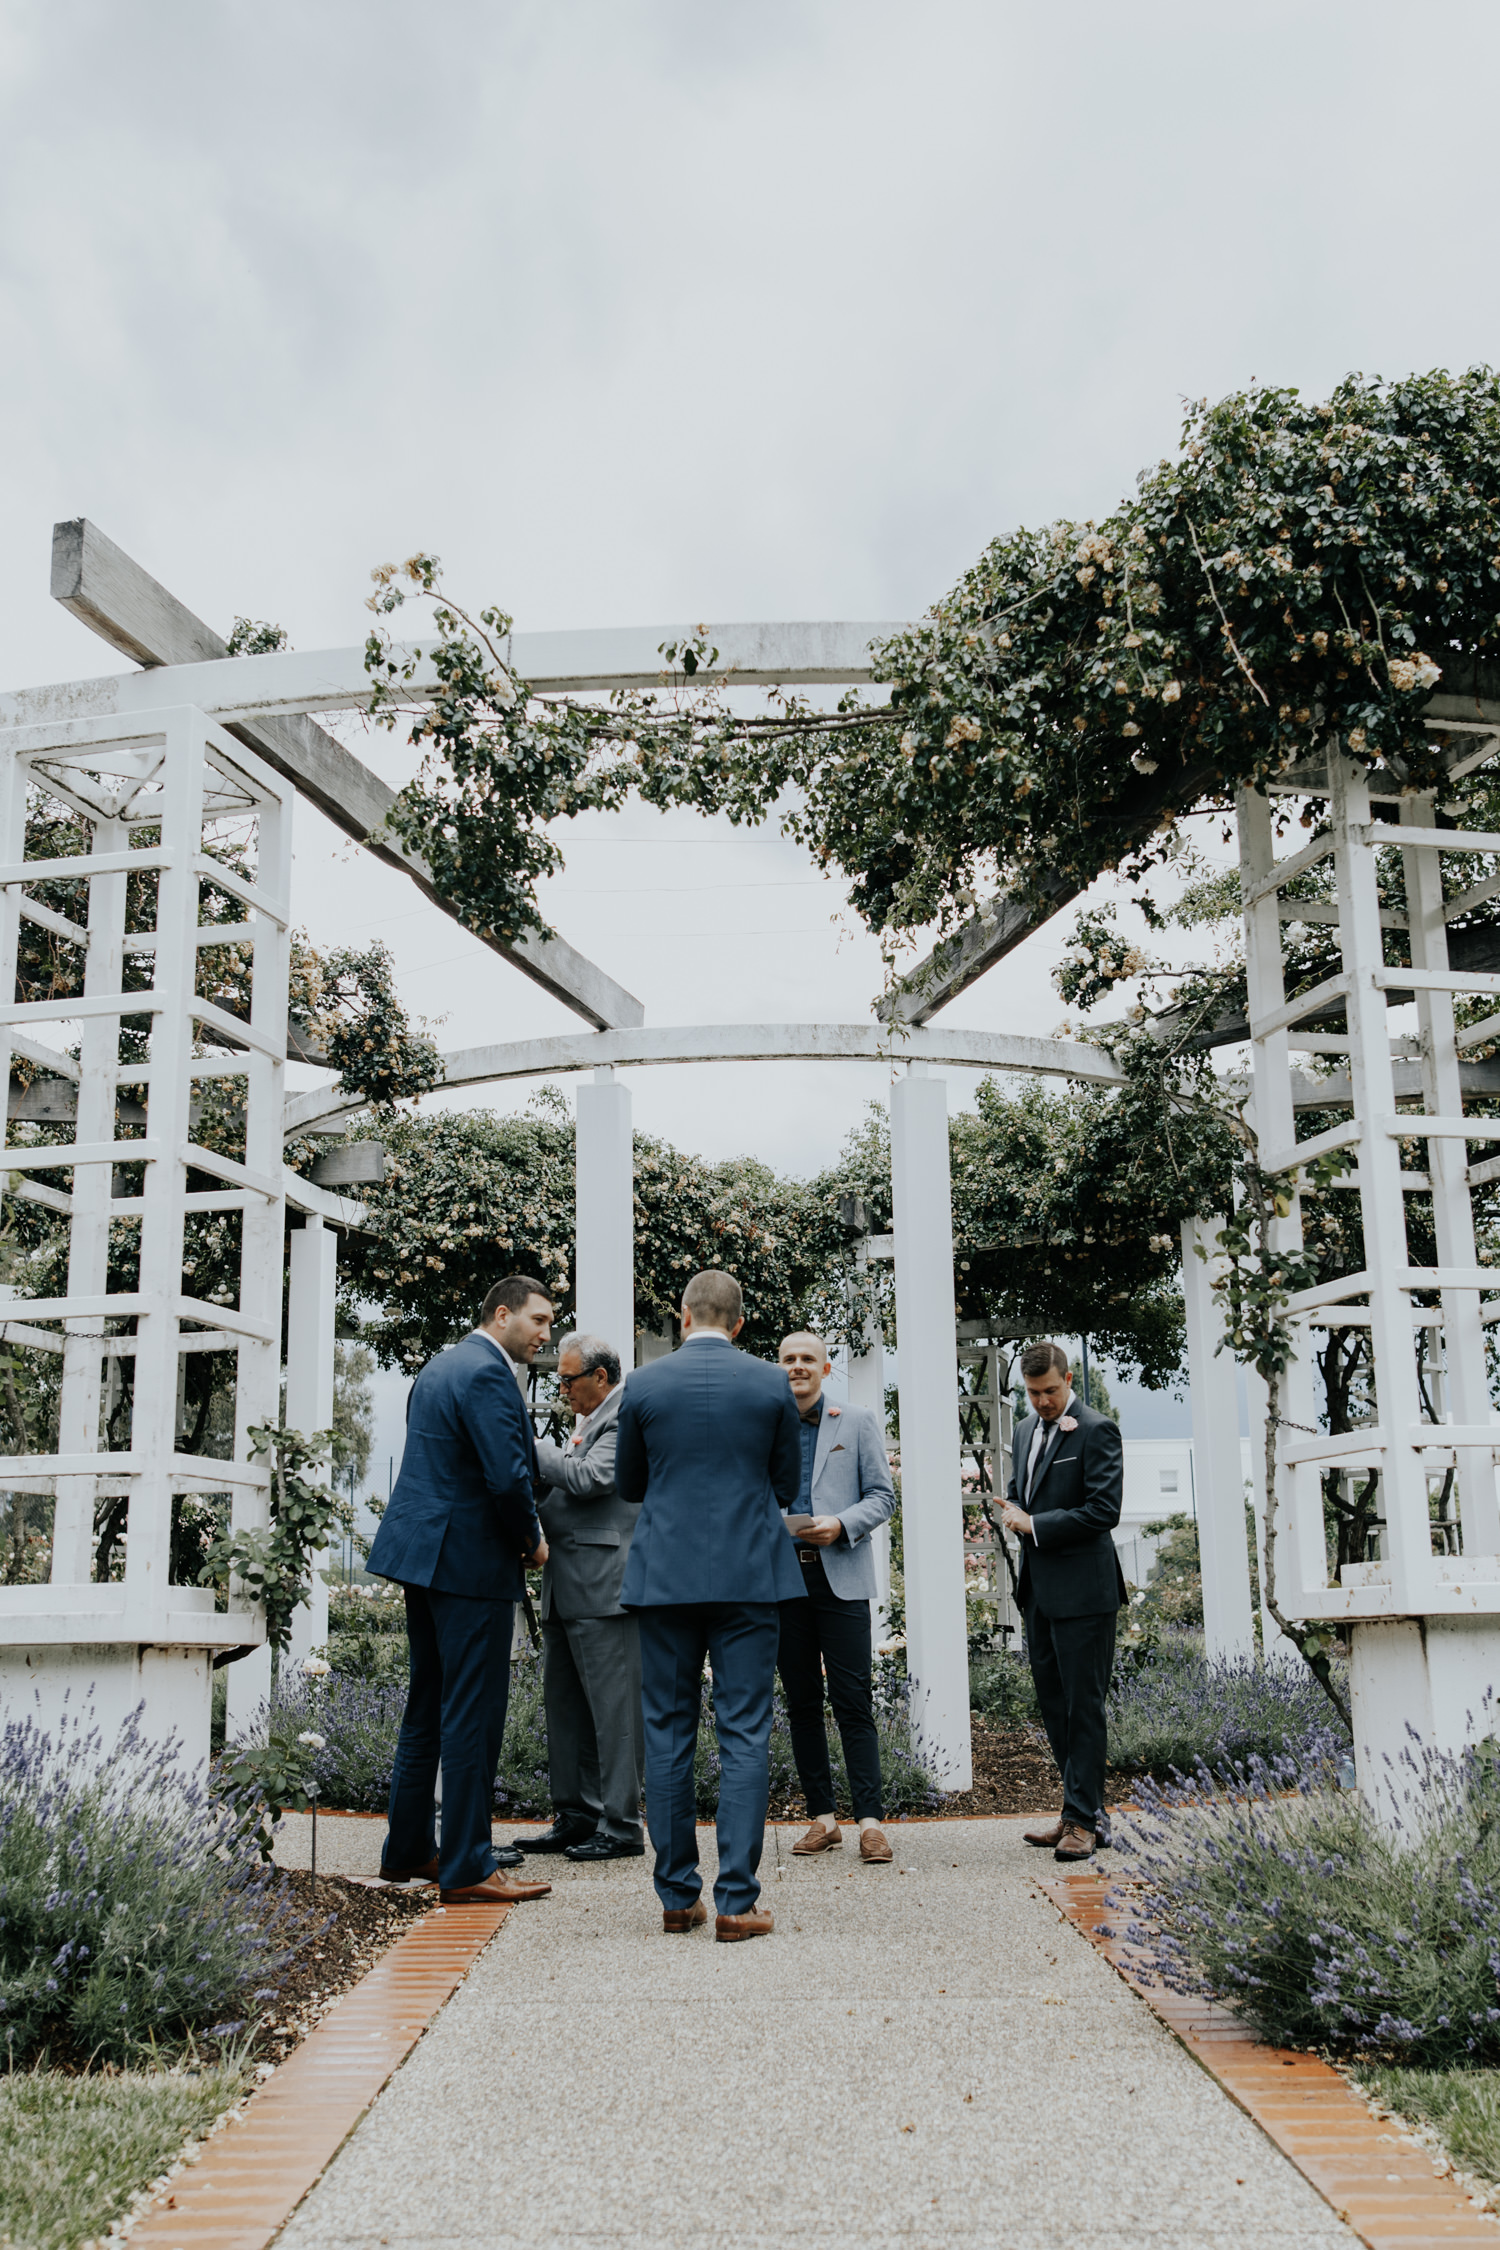 Senate Rose Gardens Wedding Canberra - Photography by Jenny Wu Straight No Chaser